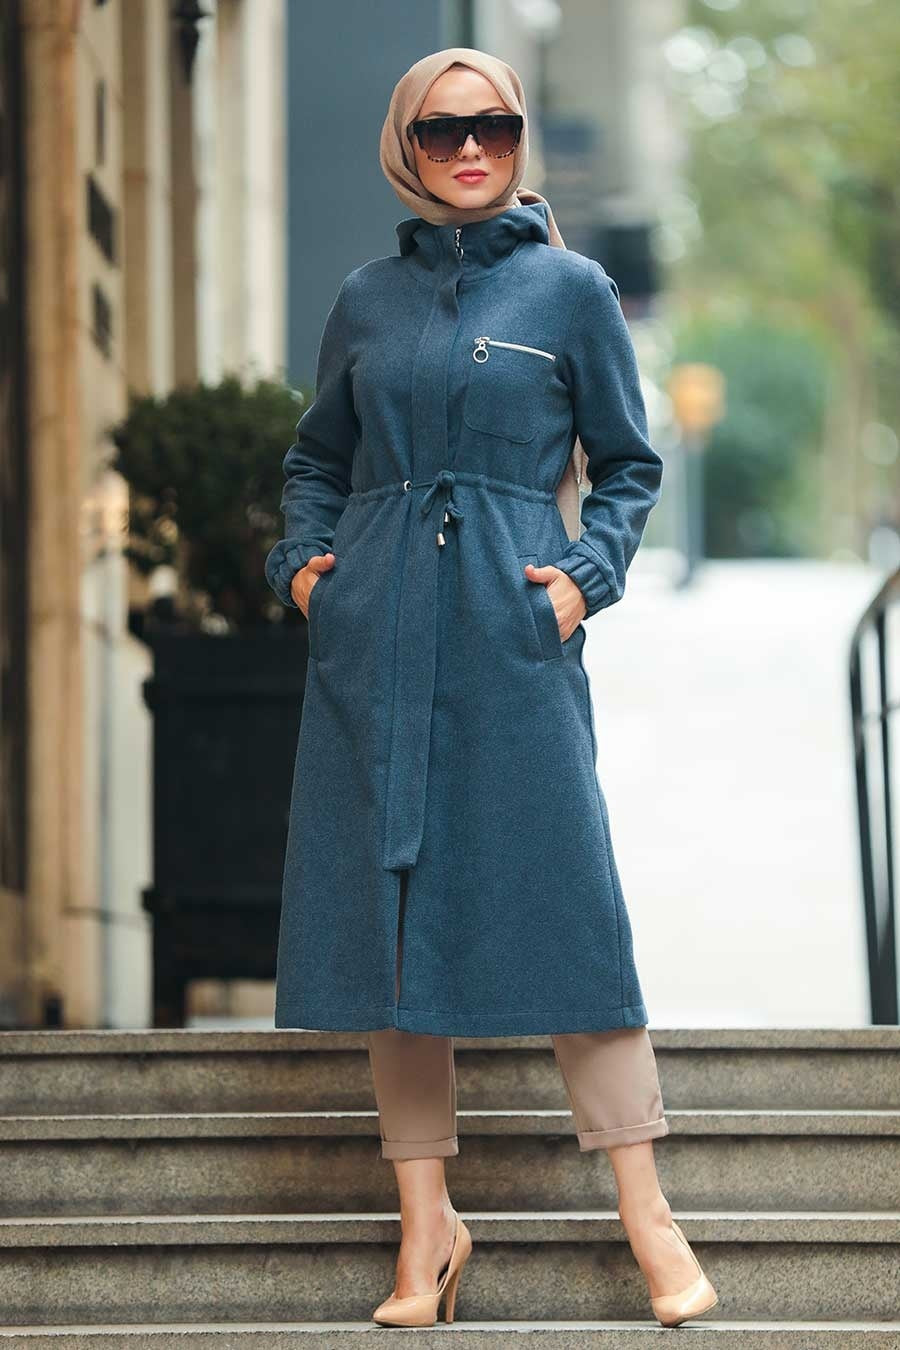 Women's Zipper Indigo Modest Coat